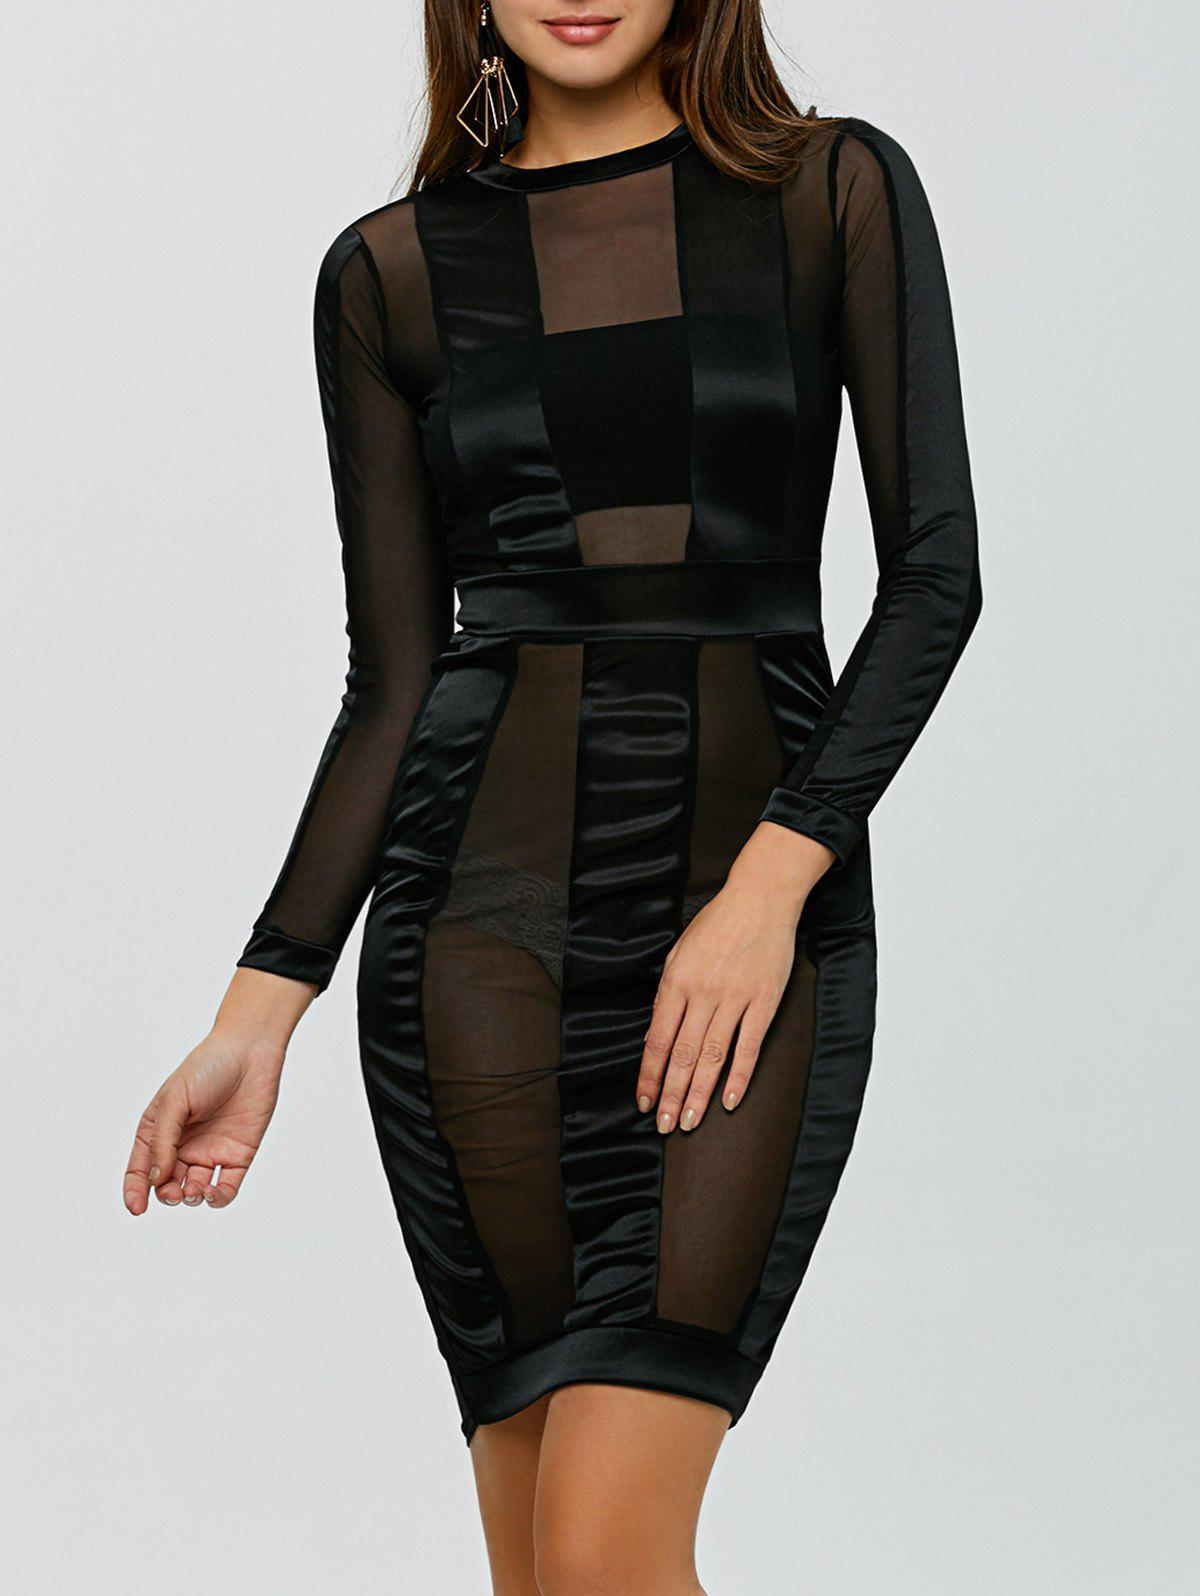 See Through Long Sleeve Bandage Club Dress - BLACK S